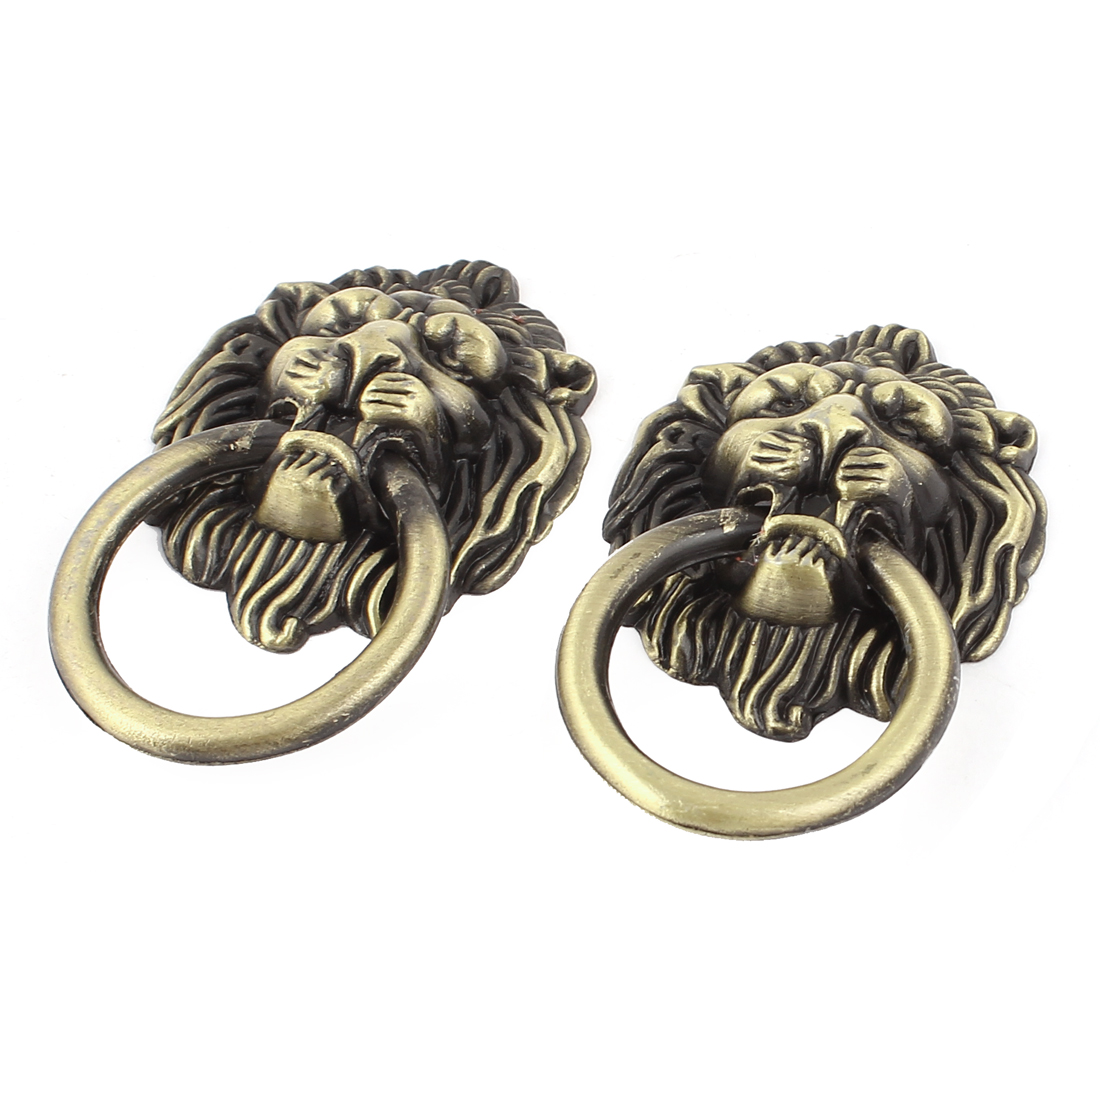 Antique Style Lion Head Design Drawer Ring Pull Handle Knob 2pcs